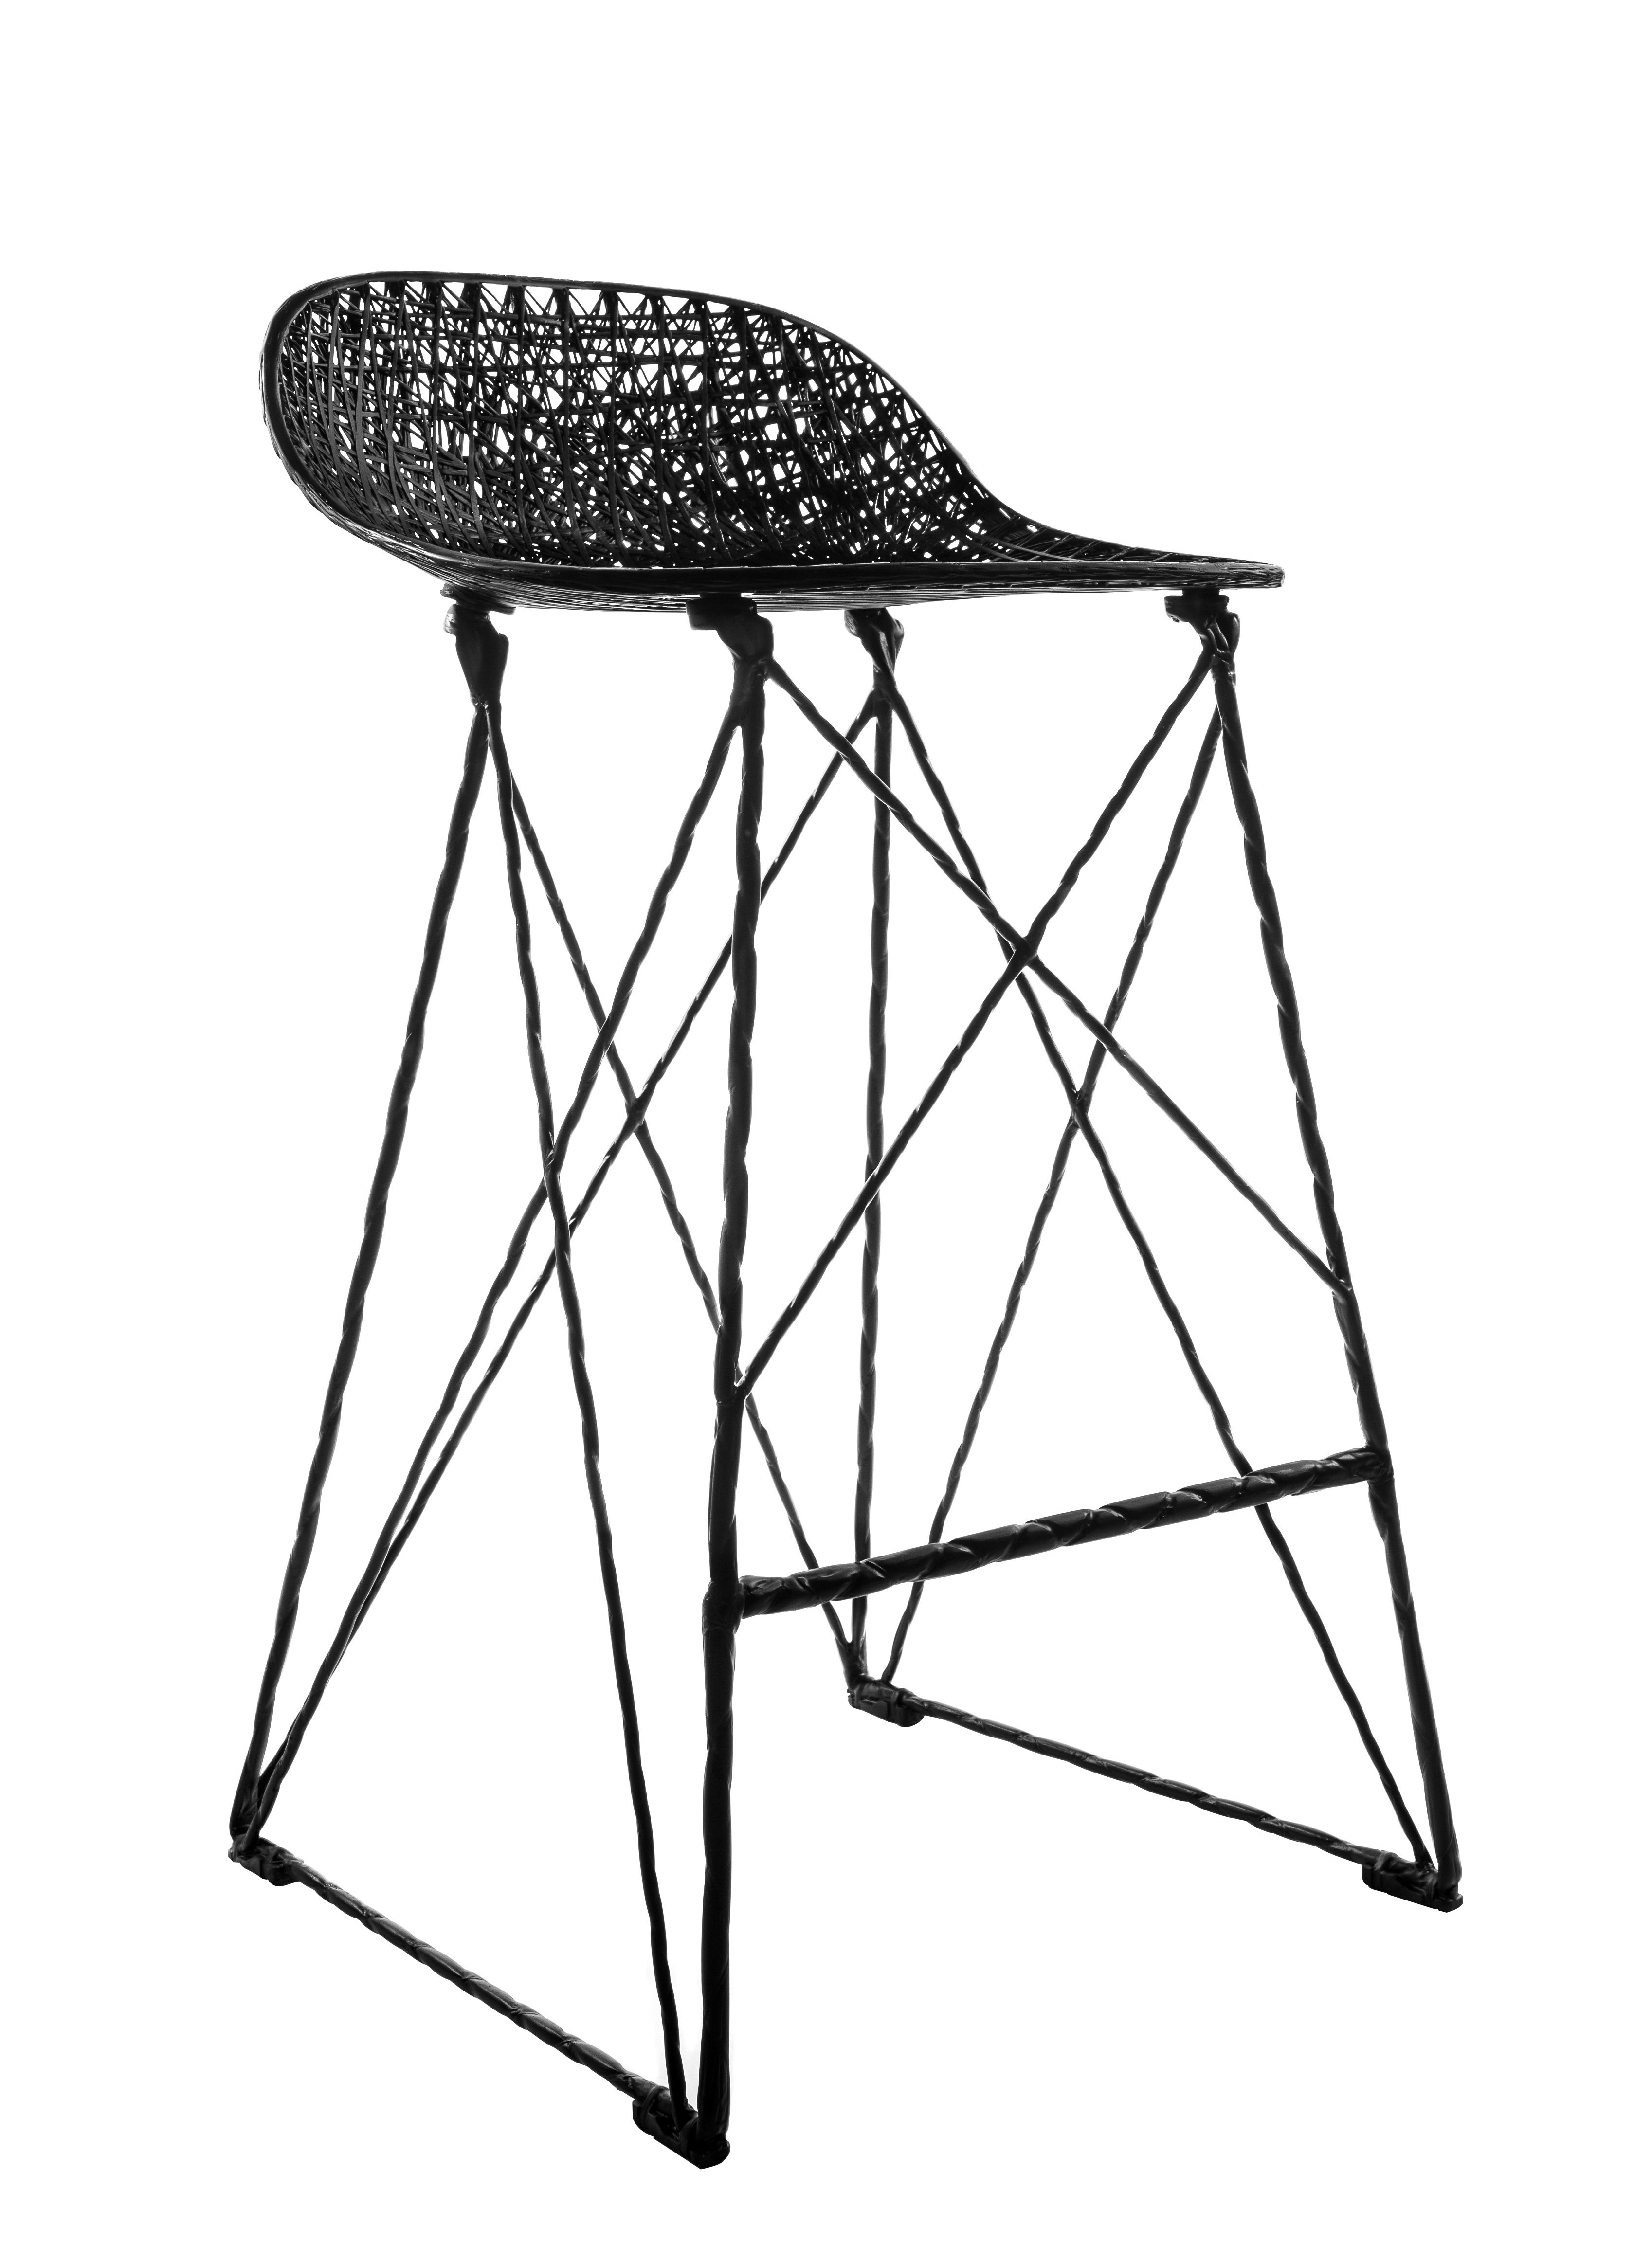 tabouret haut carbon outdoor h 66 cm fibre de carbone noir moooi. Black Bedroom Furniture Sets. Home Design Ideas